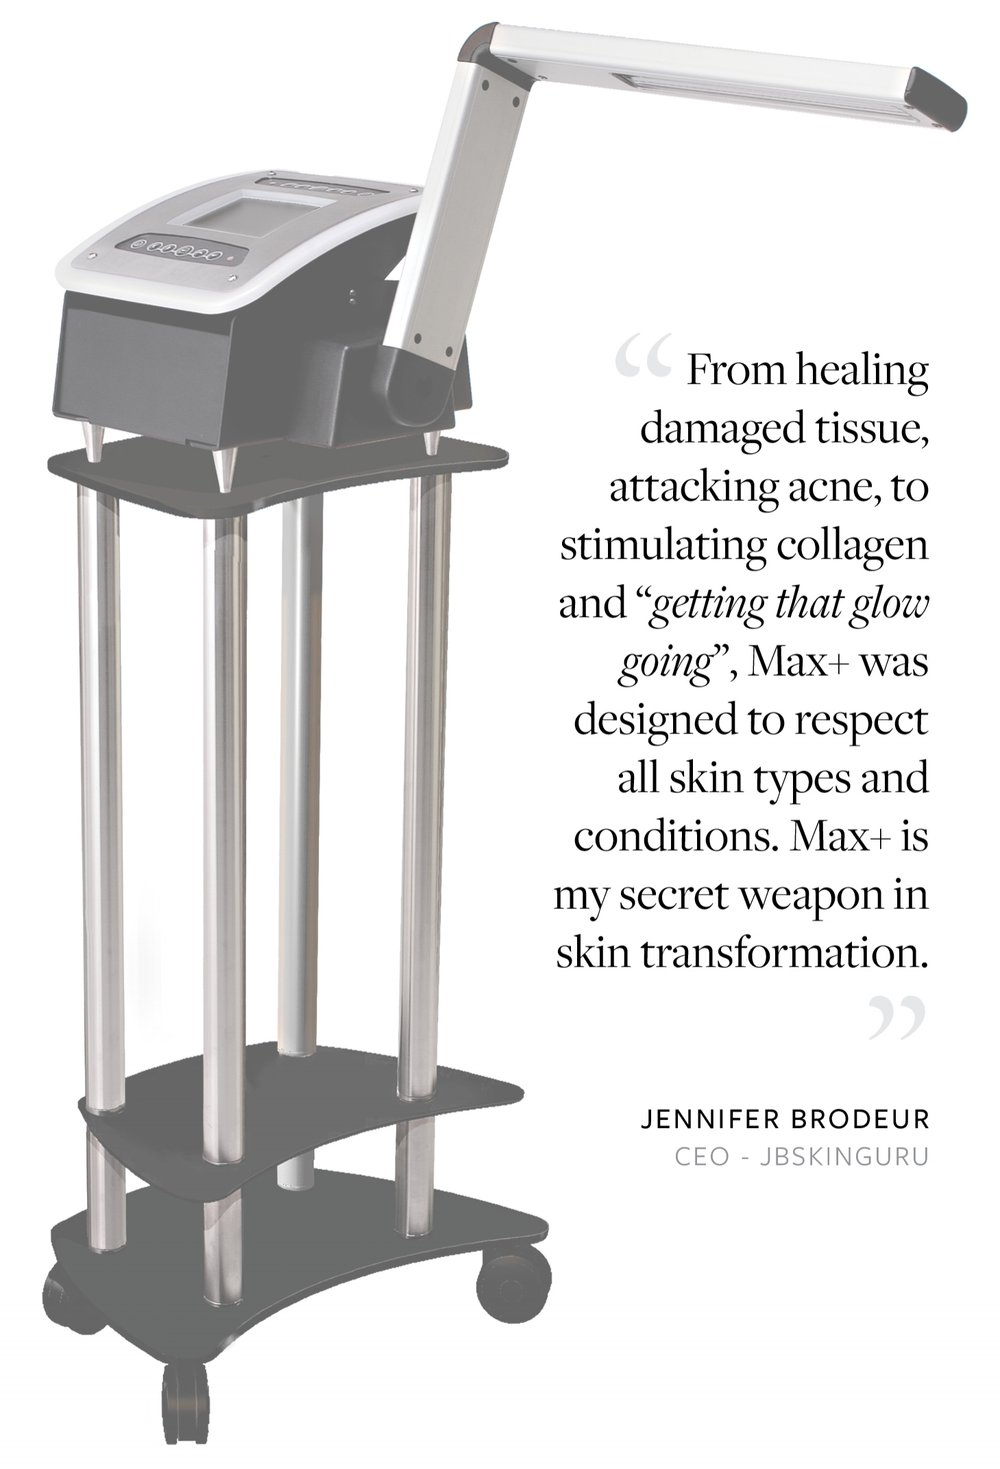 """From healing damaged tissue, attacking acne, to stimulating collagen and ""getting that glow going"", Max+ was designed to respect all skin types and conditions. Max+ is my secret weapon in skin transformation."" - Jennifer Brodeur, CEO - JB Skin Guru"